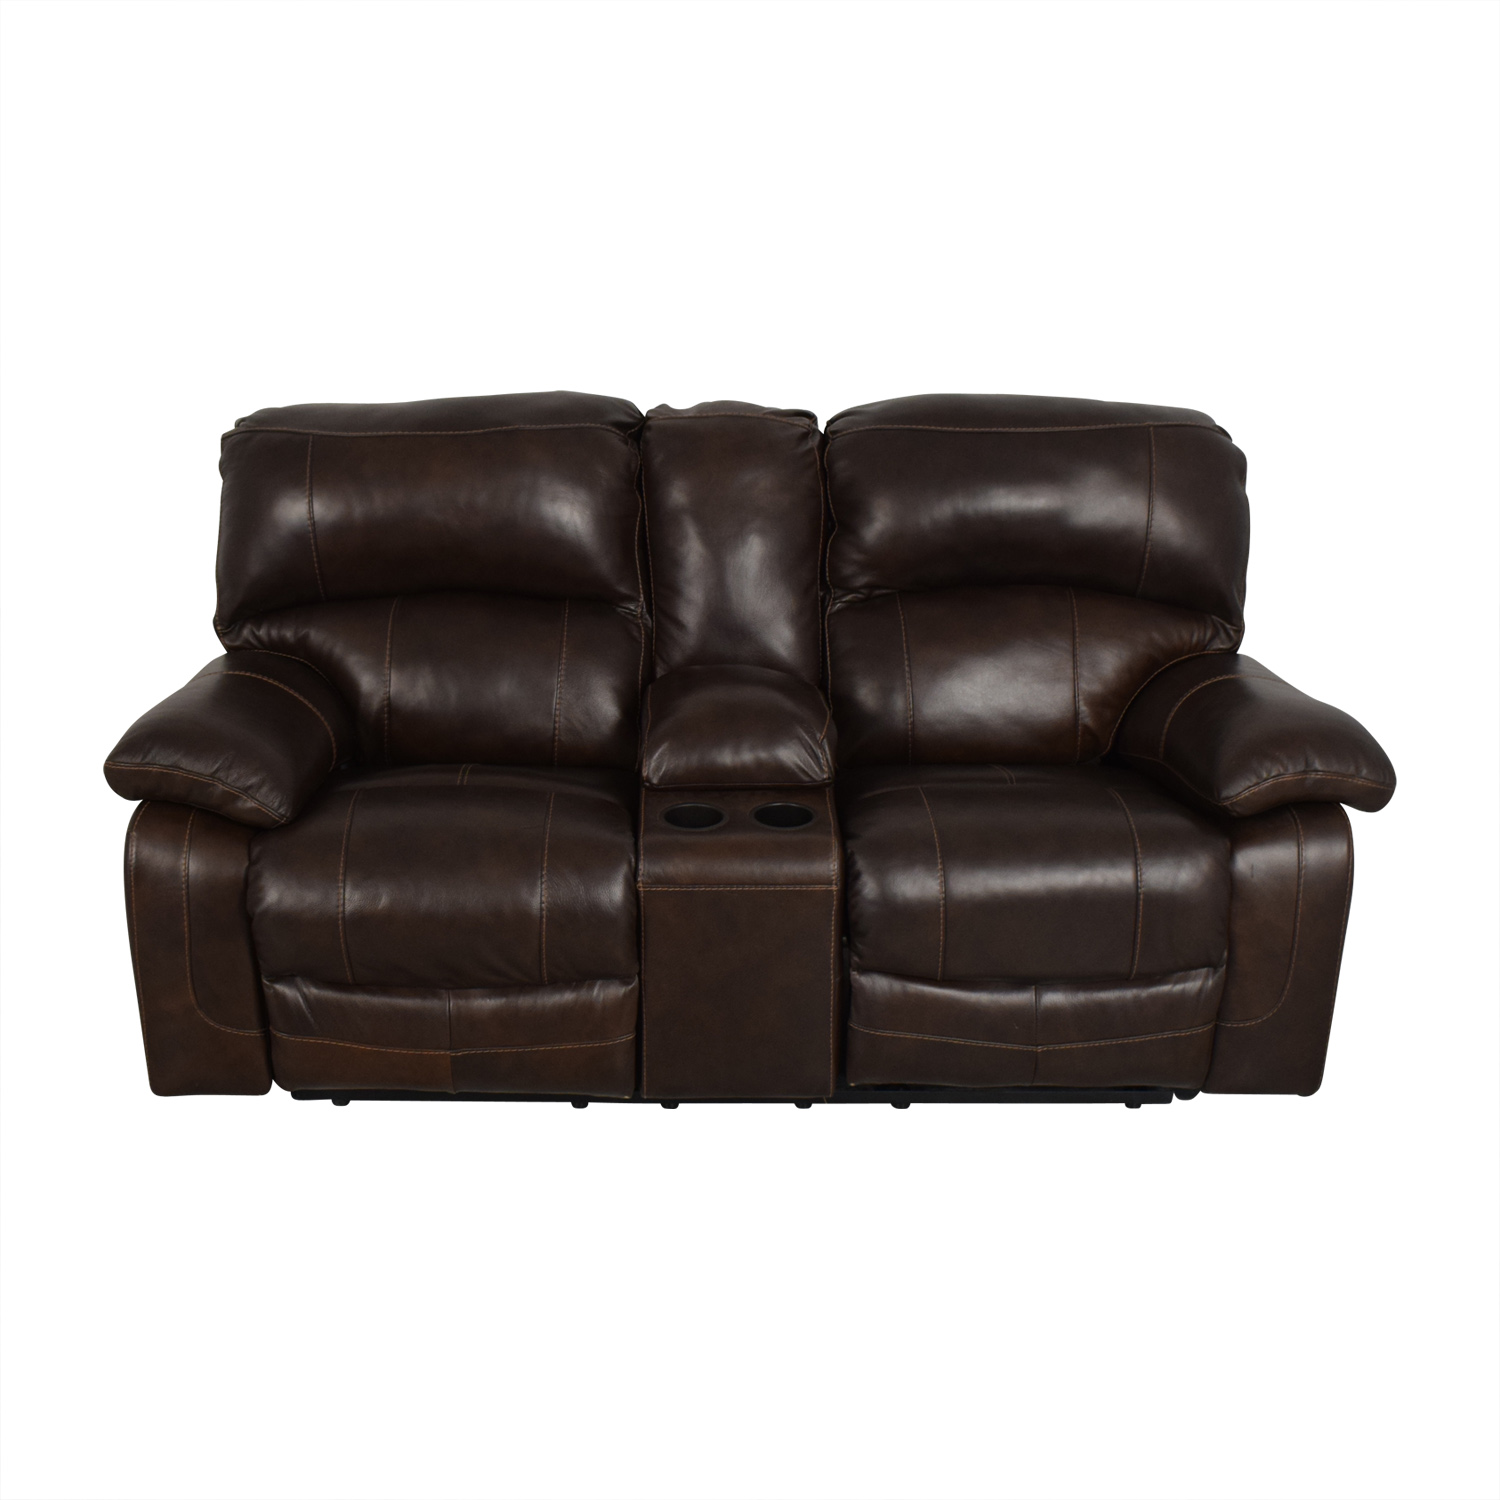 buy Ashley Furniture Reclining Sofa Ashley Furniture Chairs